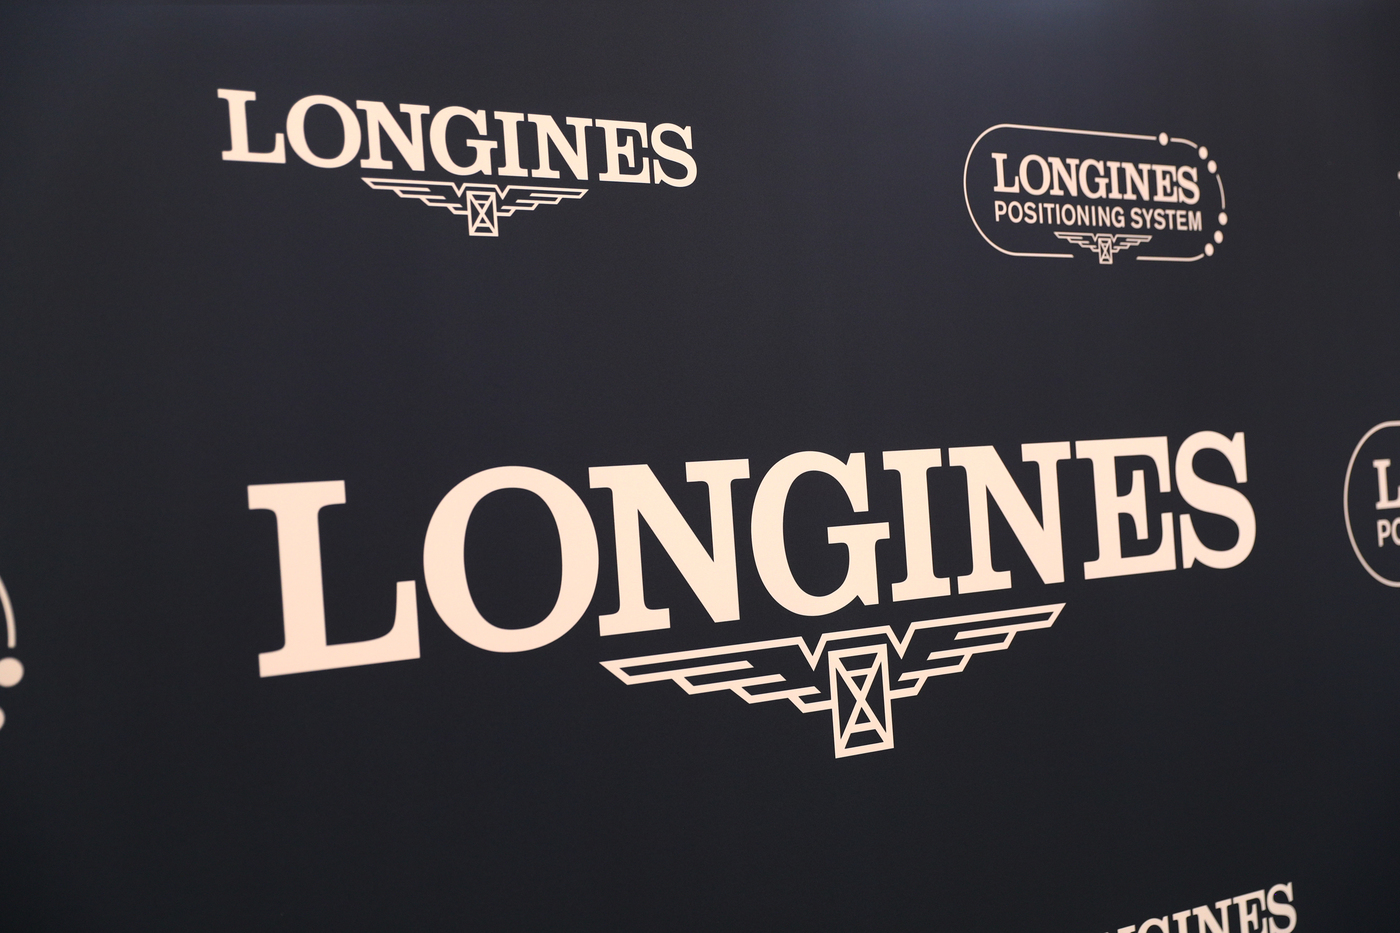 Longines Flat Racing Event: Longines presented its exclusive offer in sports timing services including a brand new application 9